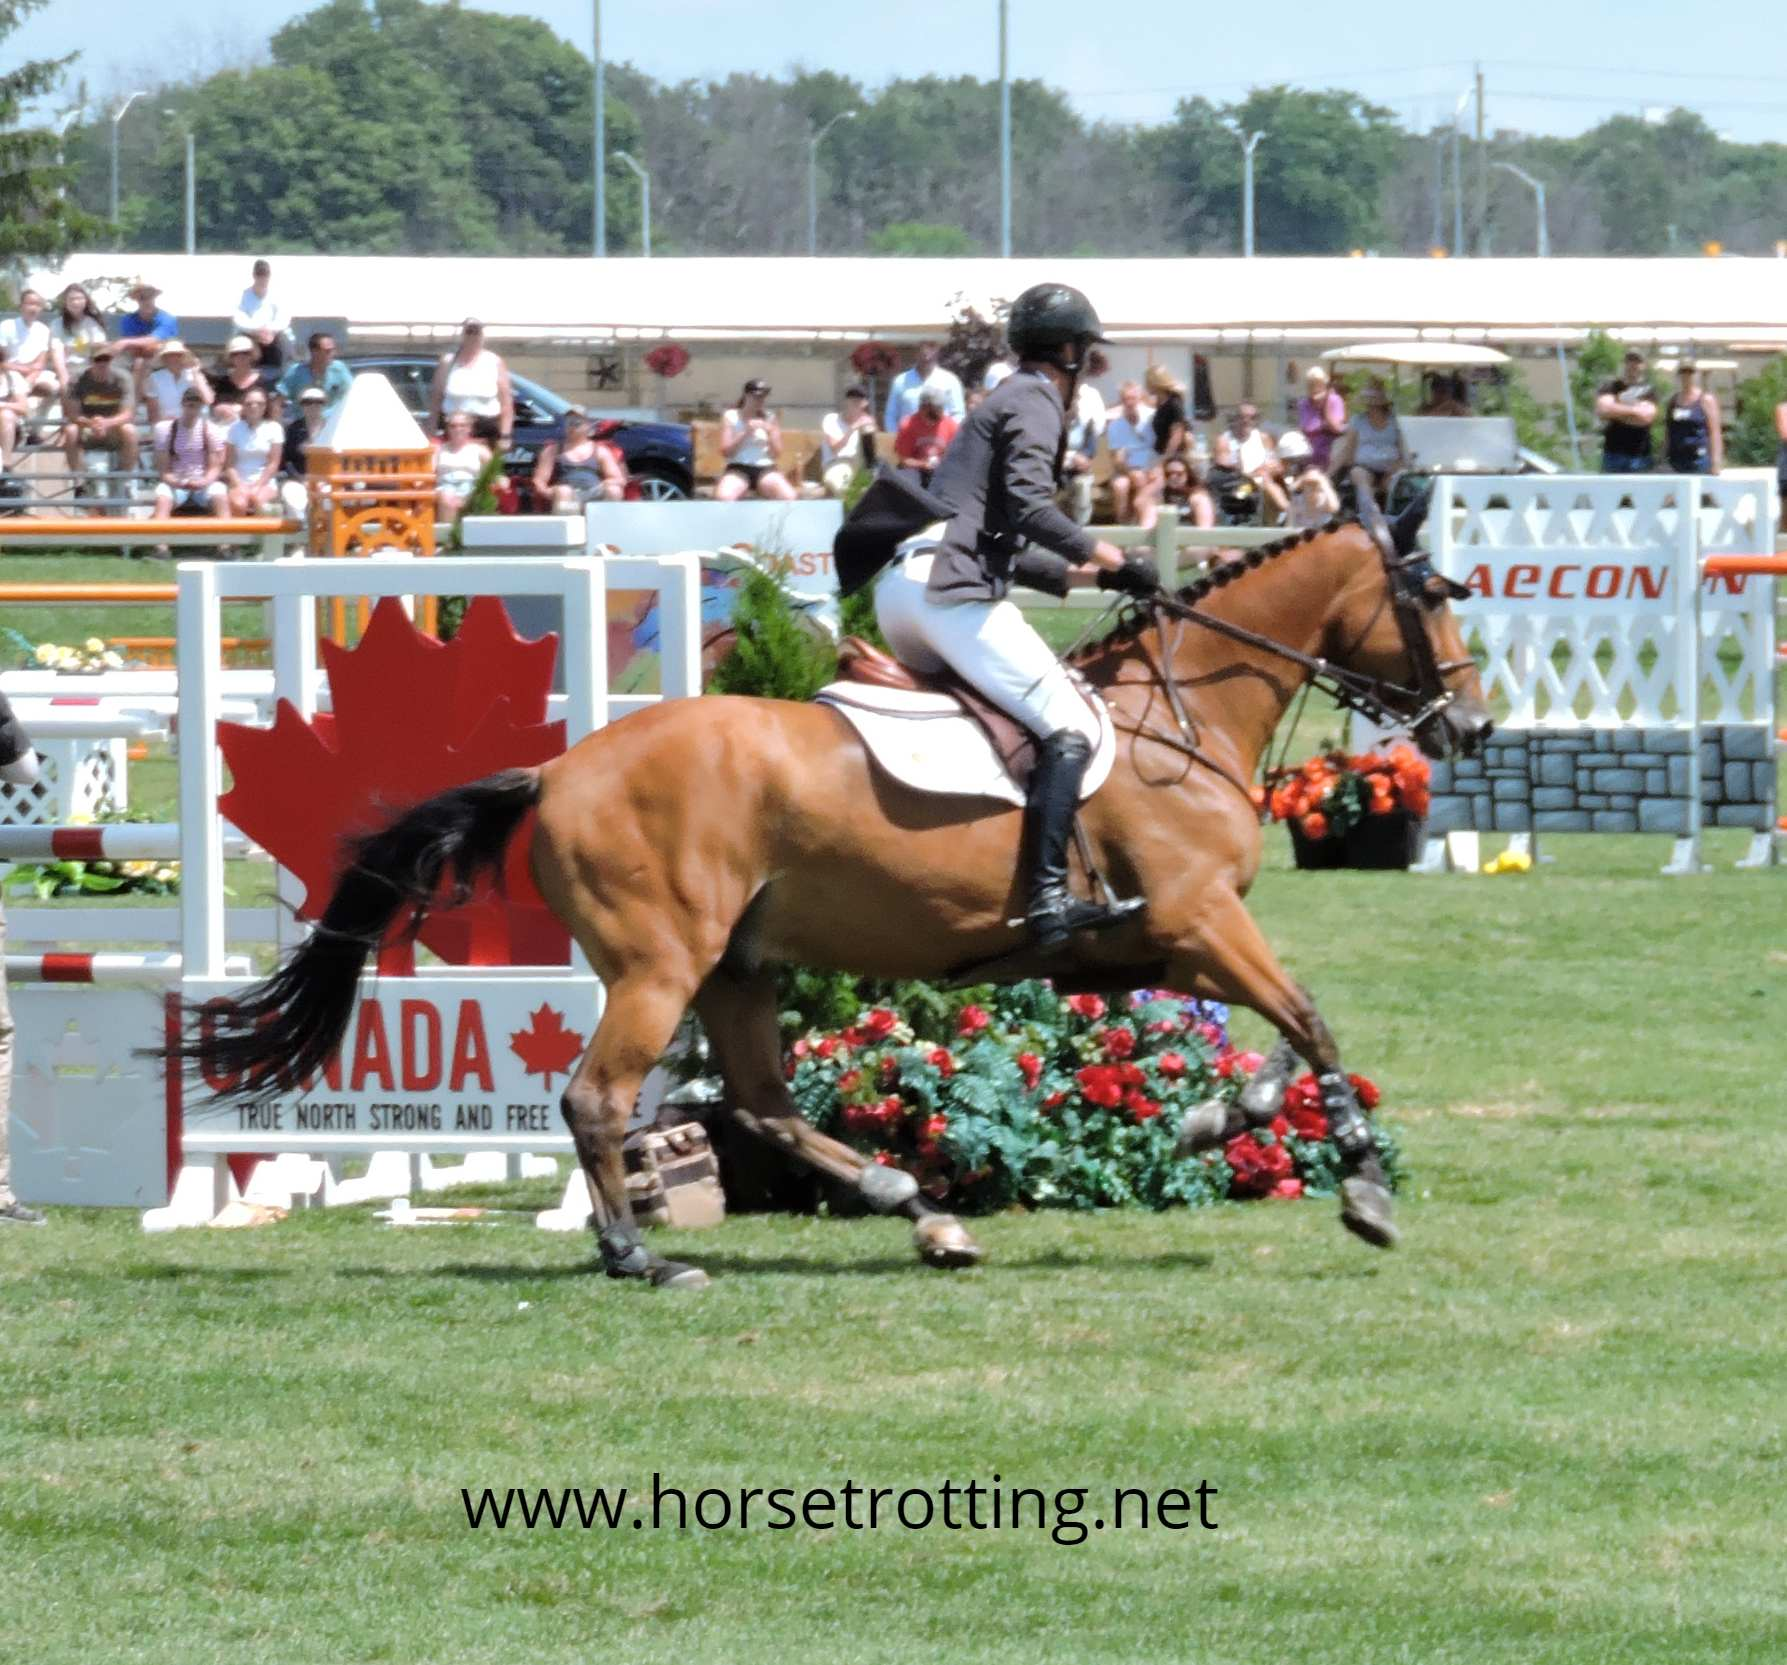 Global Travel for Horse Lovers | Travel, Trail Riding and